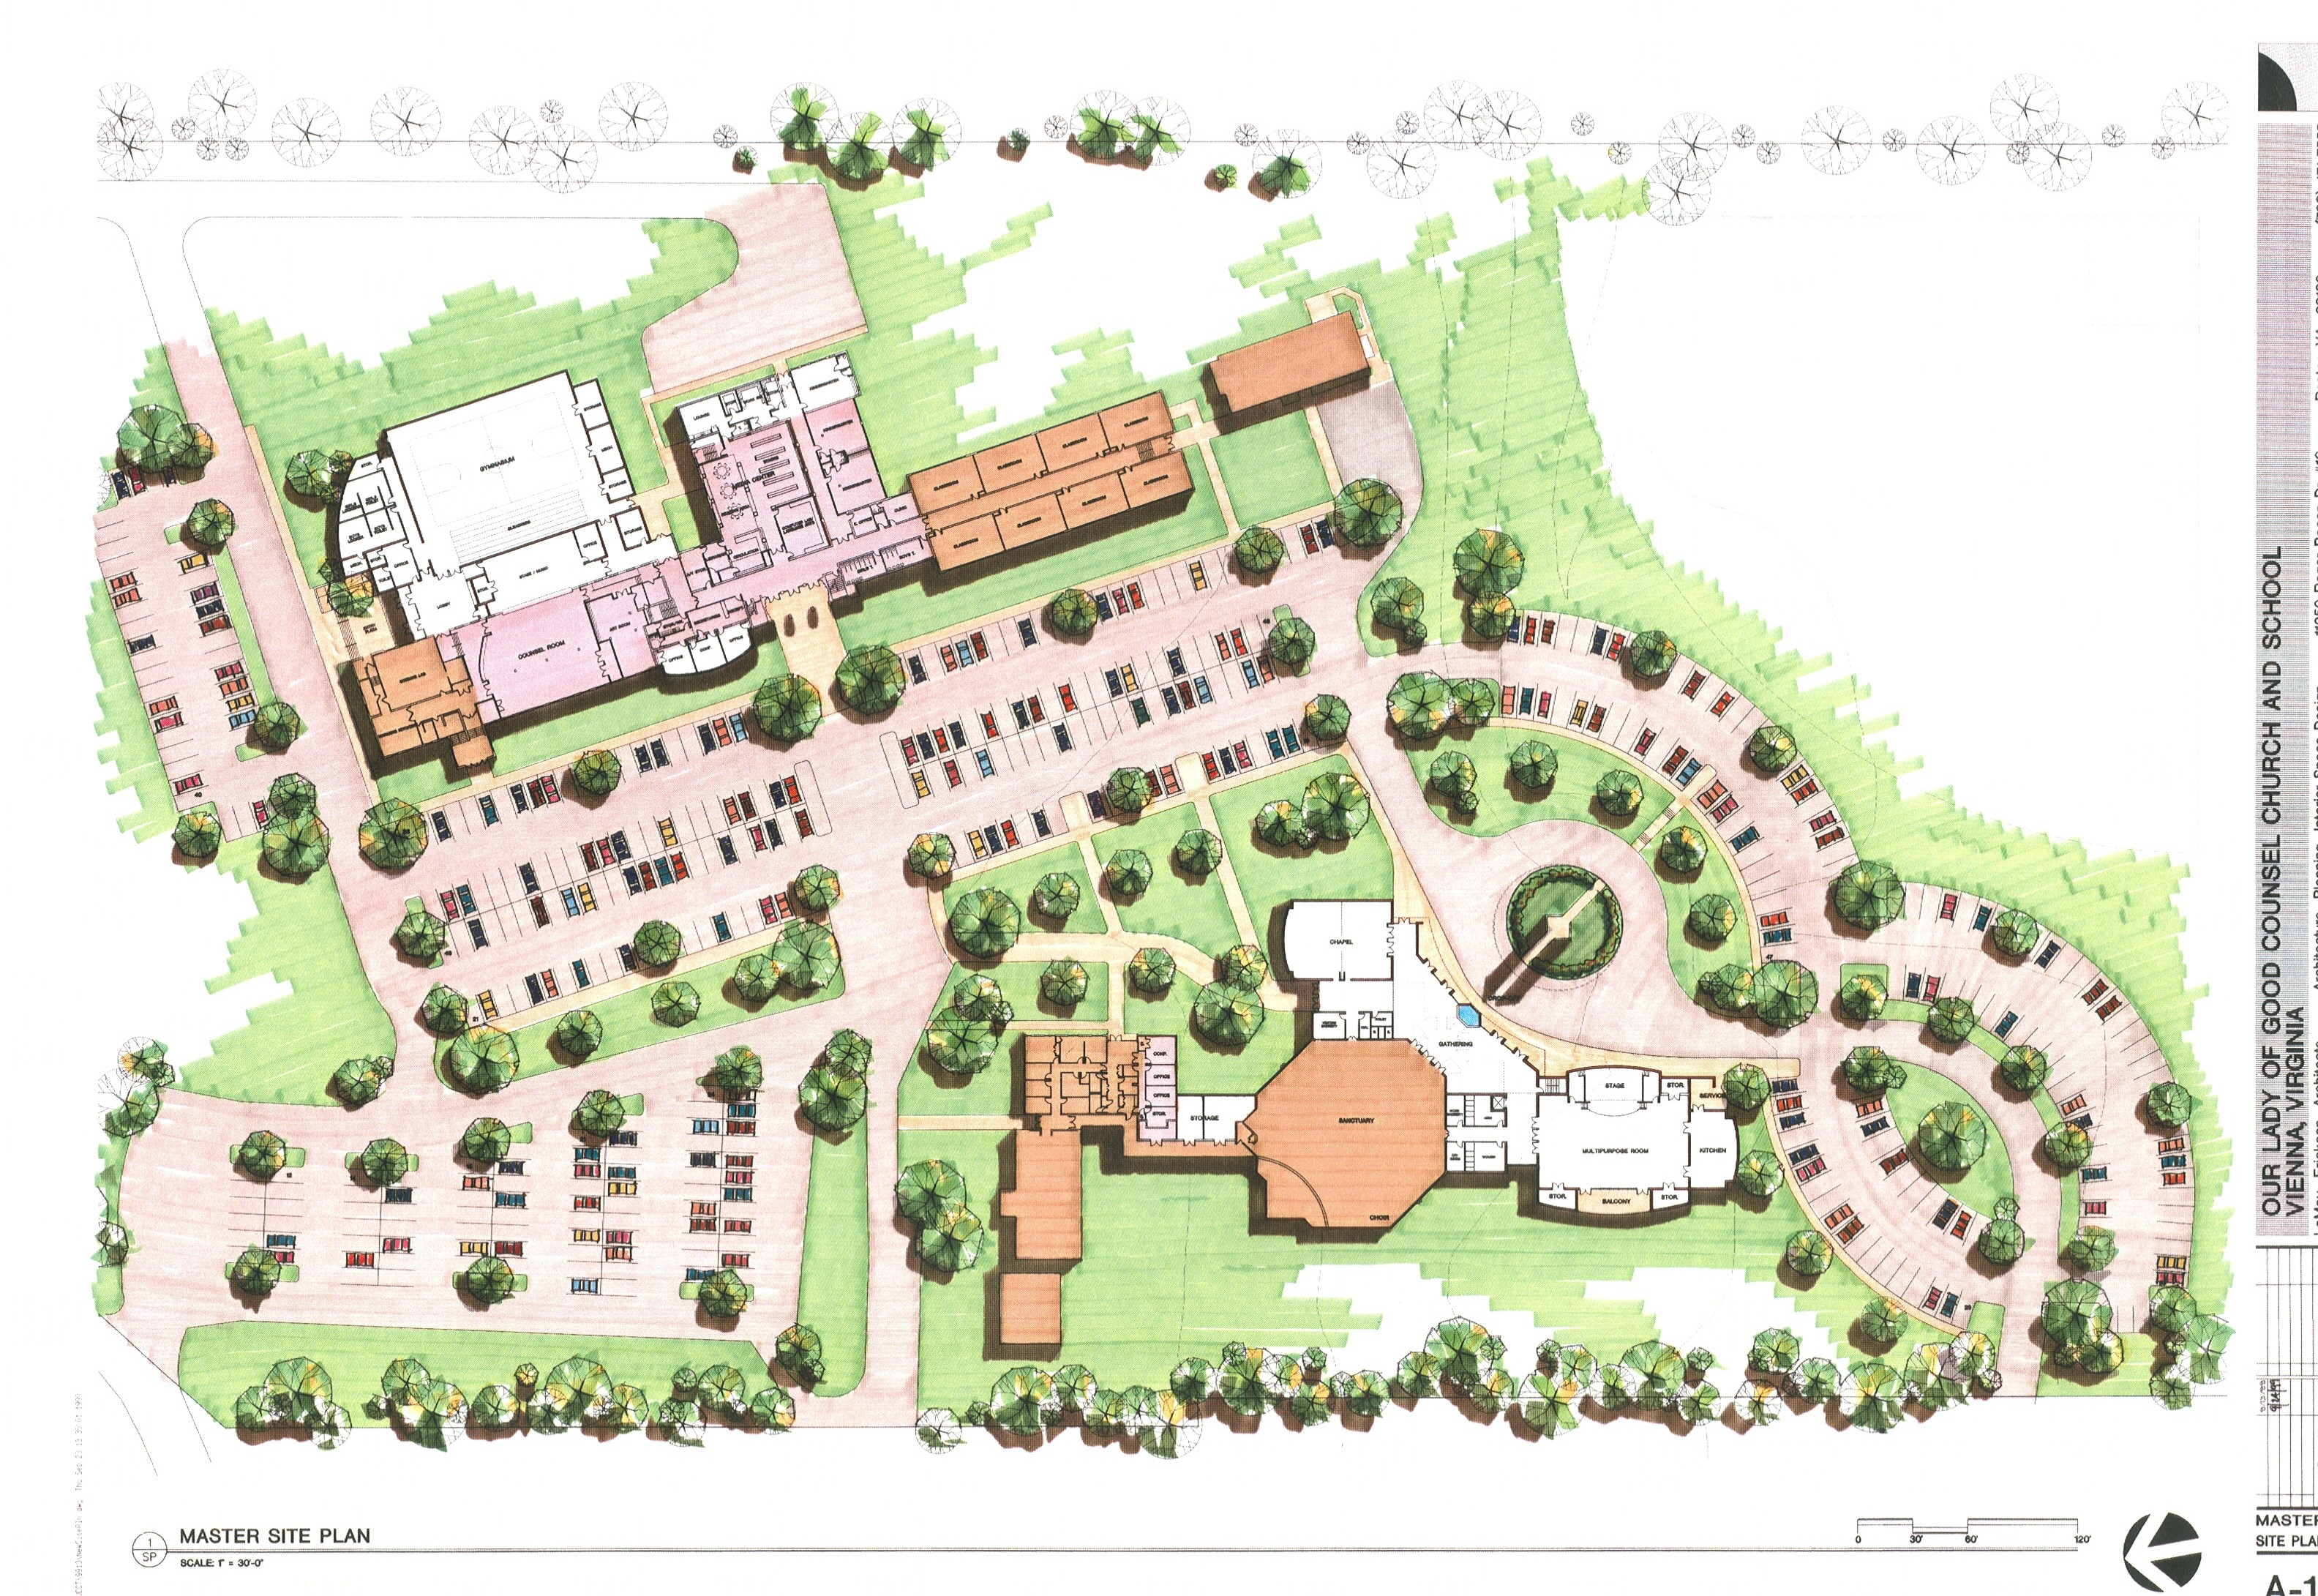 Master campus plan drawing